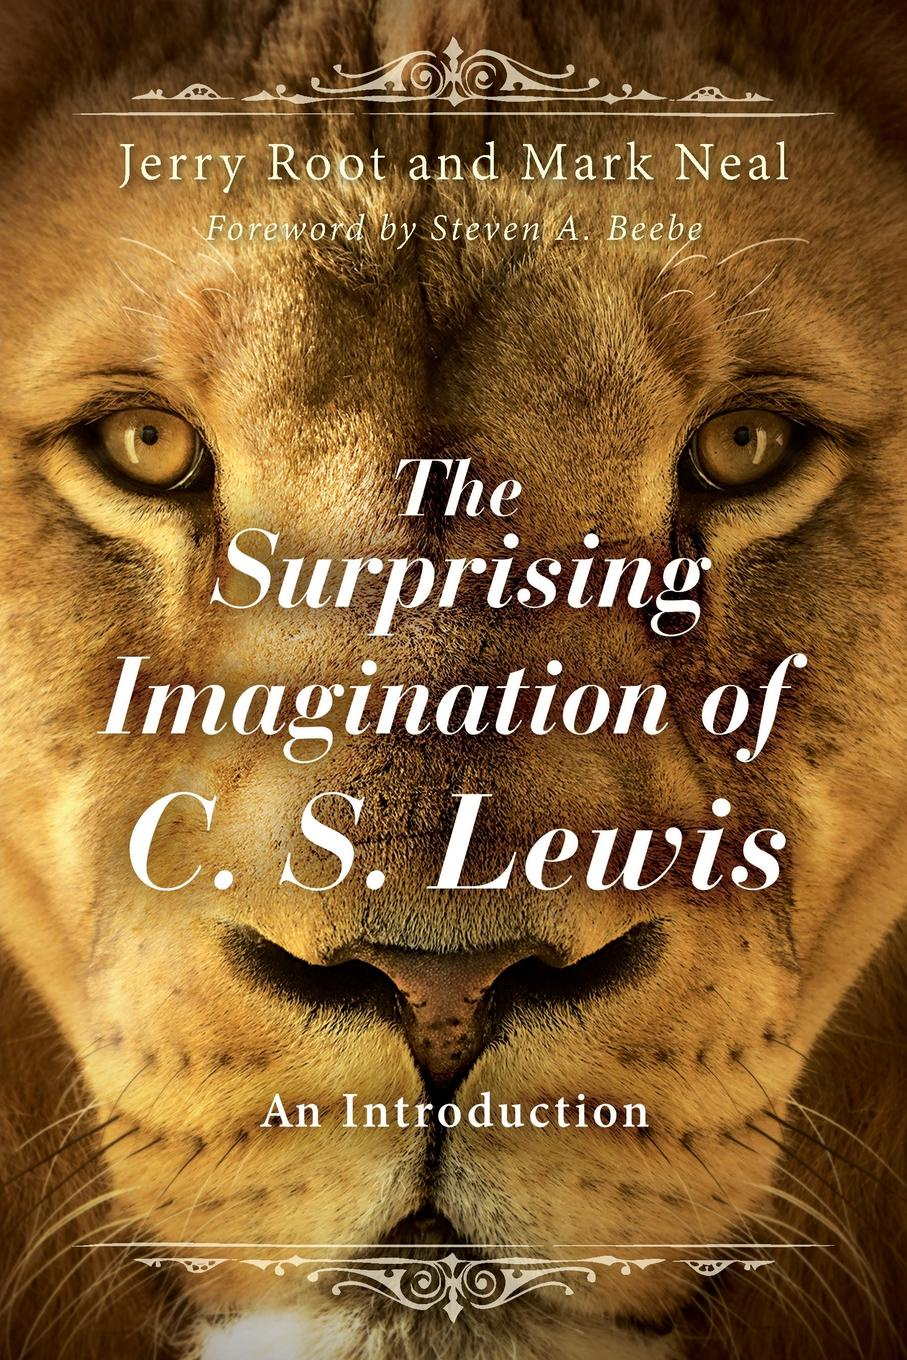 цена на Jerry Root, Mark E Neal Surprising Imagination of C. S. Lewis. An Introduction